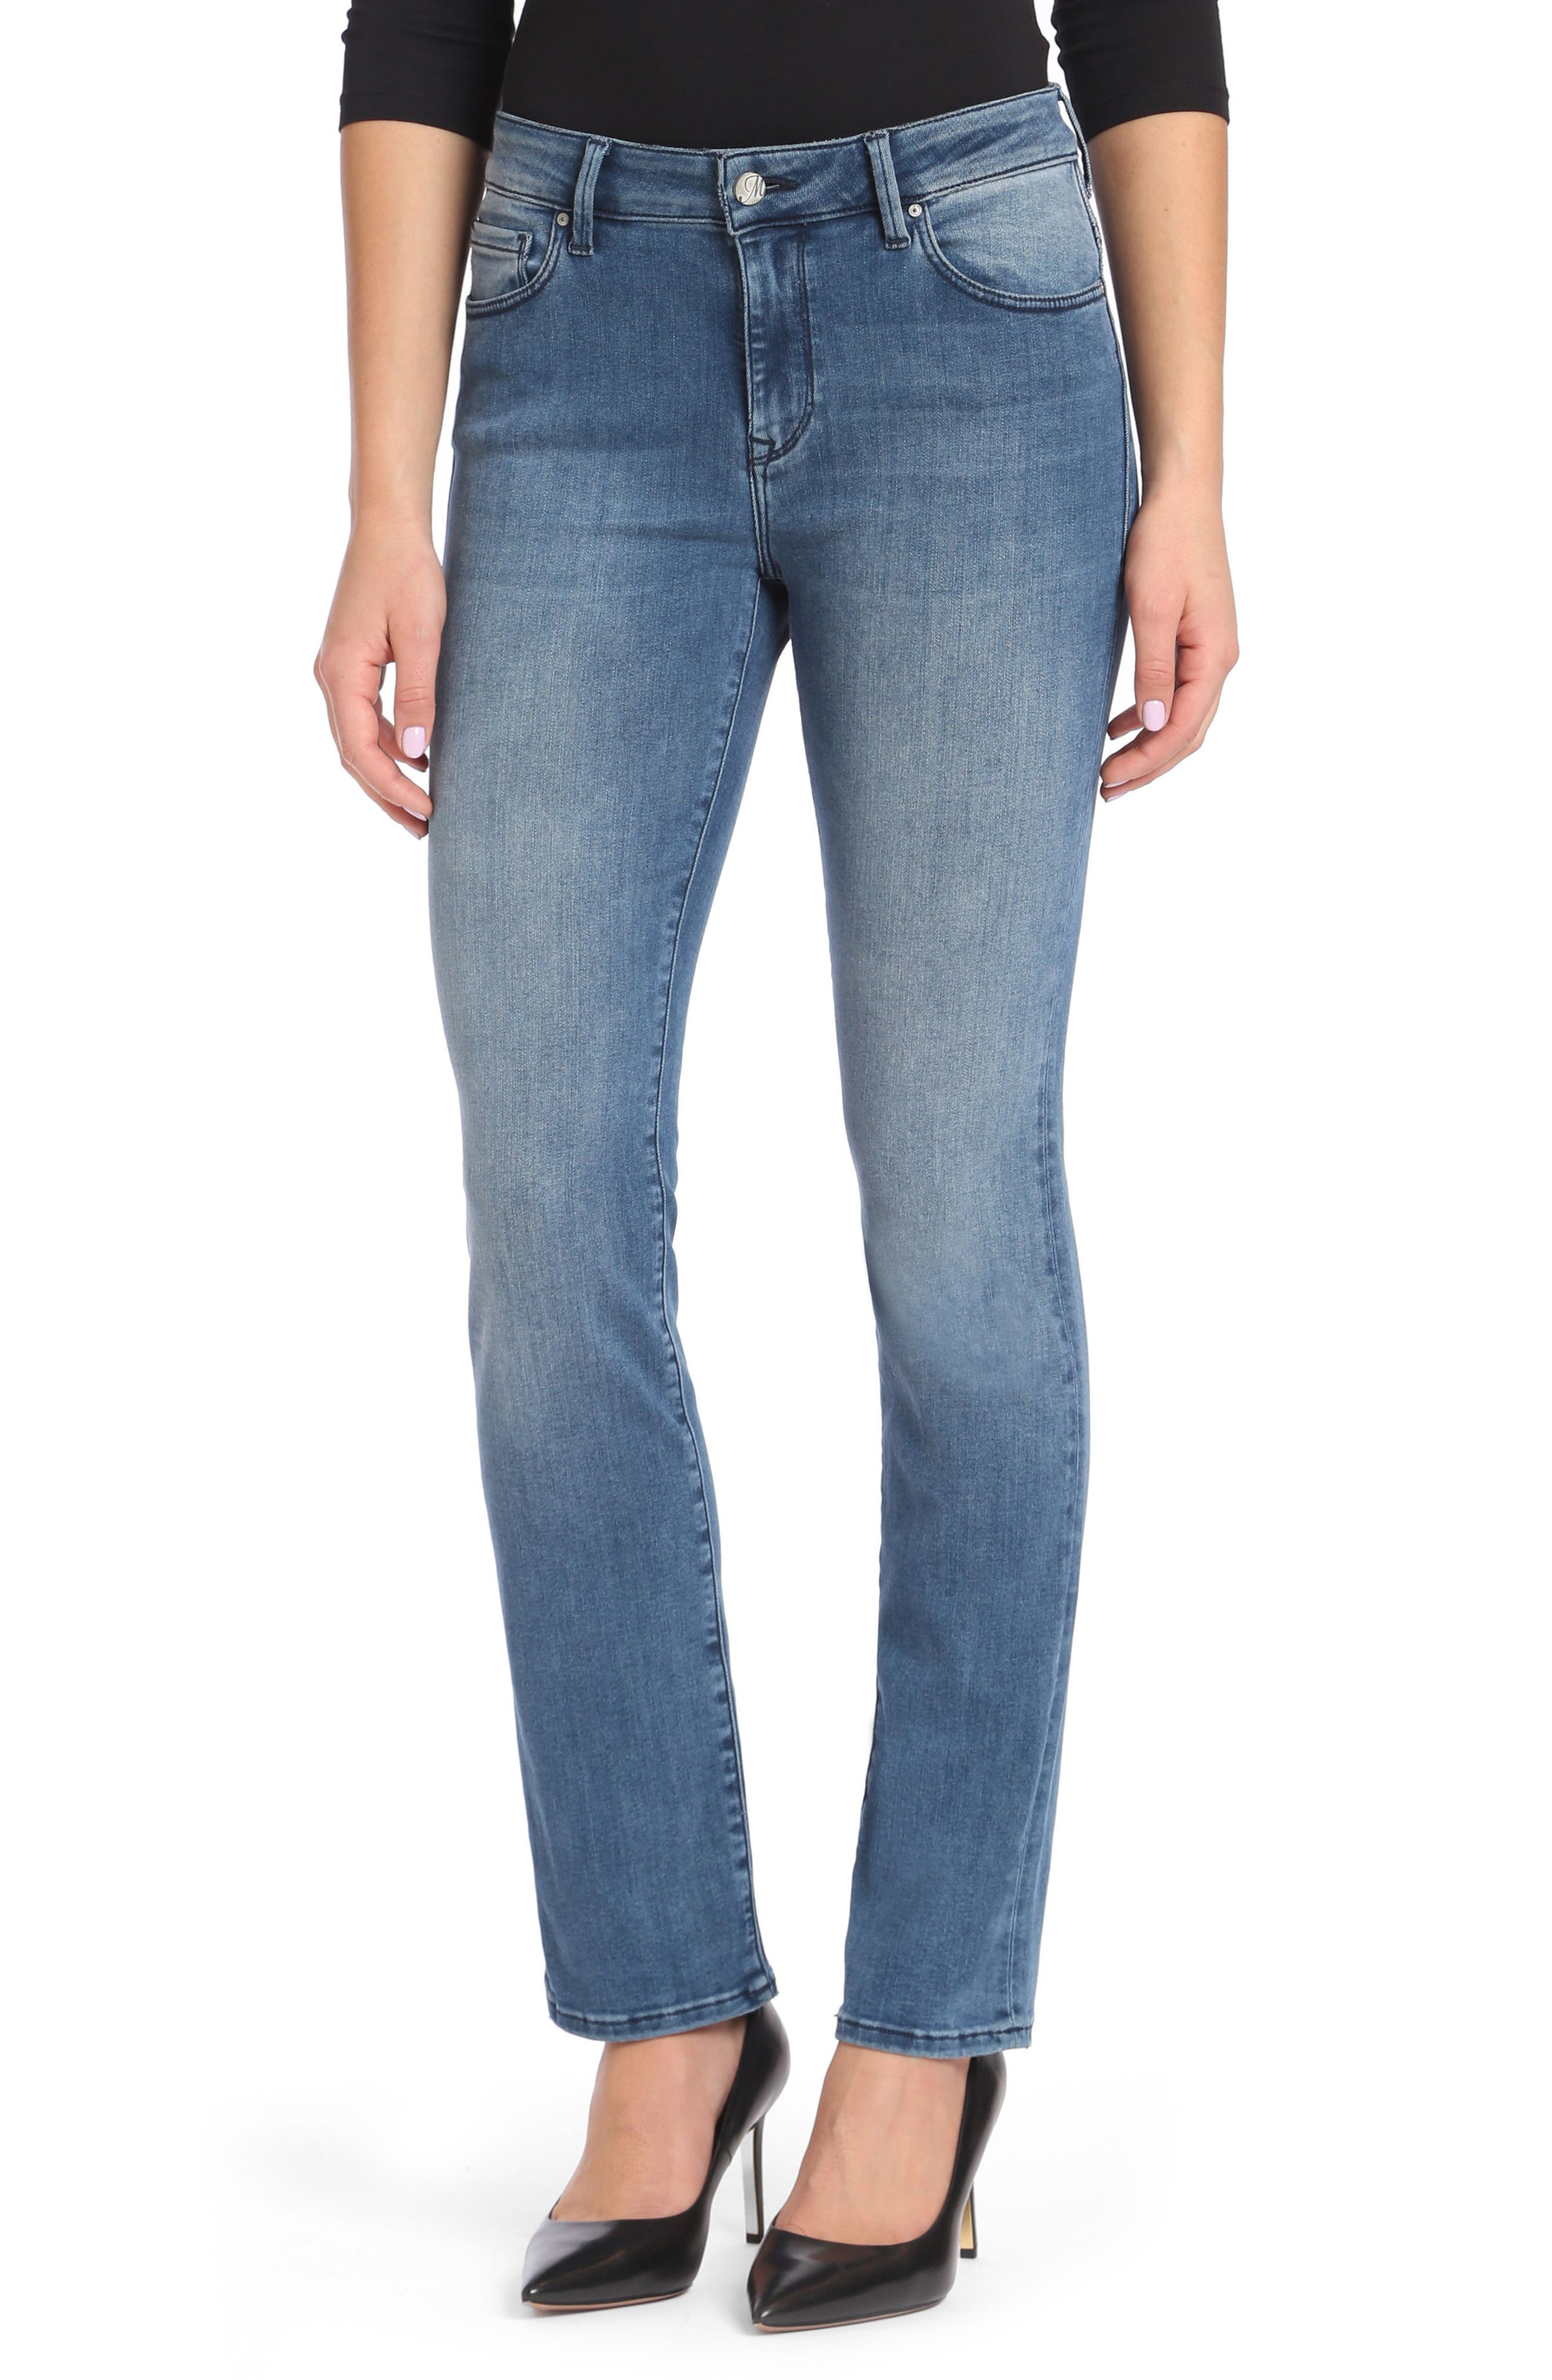 Kendra High Waist Straight Leg Jeans,                             Main thumbnail 1, color,                             Light Foggy Blue Tribeca